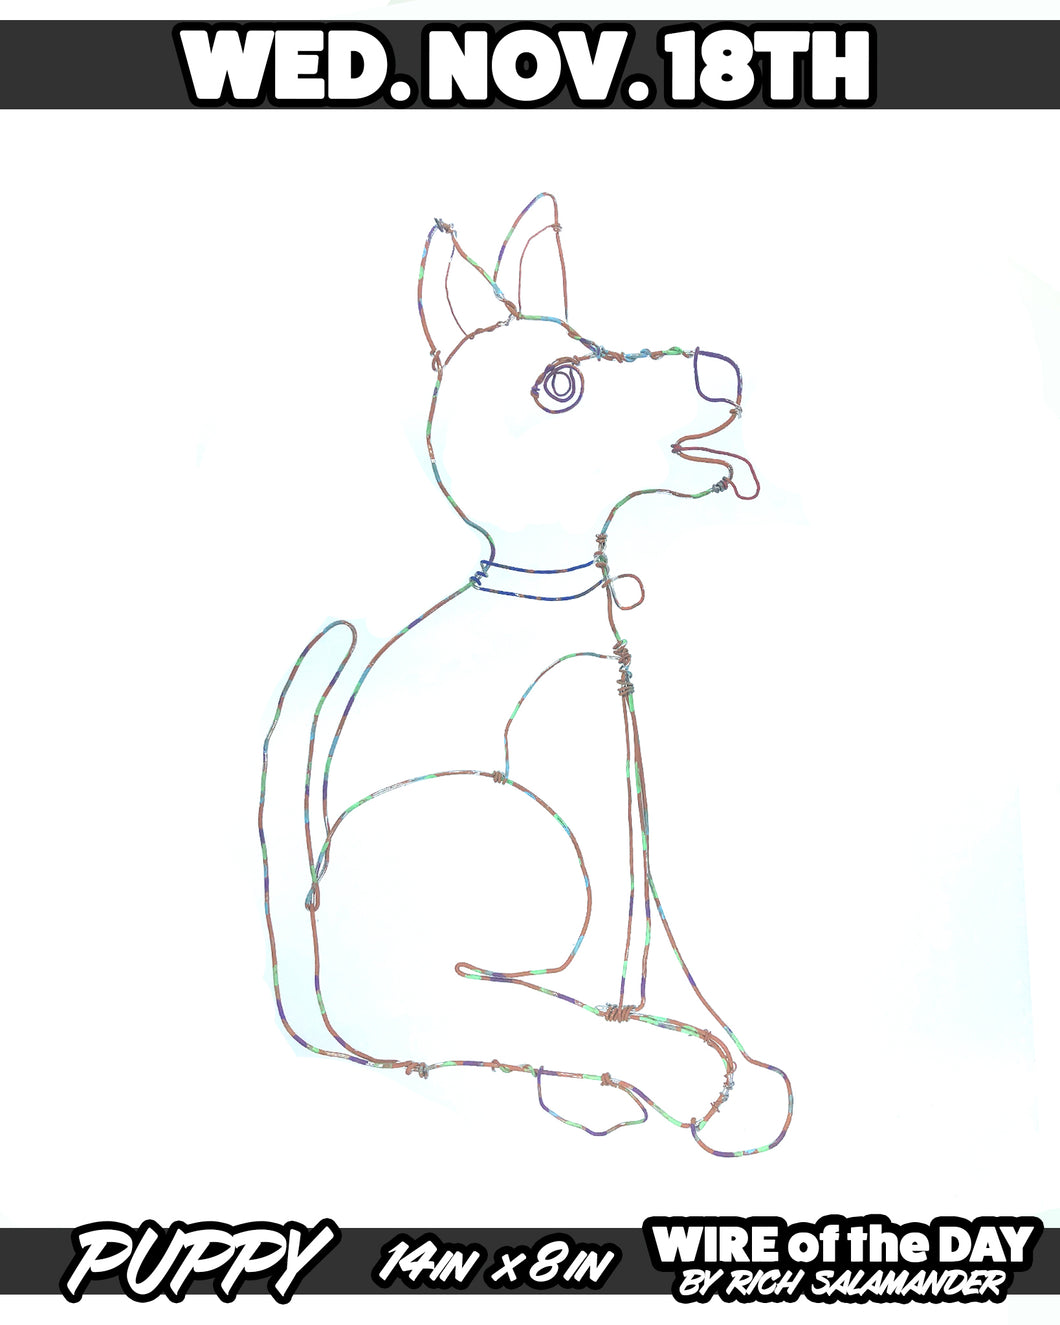 WIRE of the DAY PUPPY